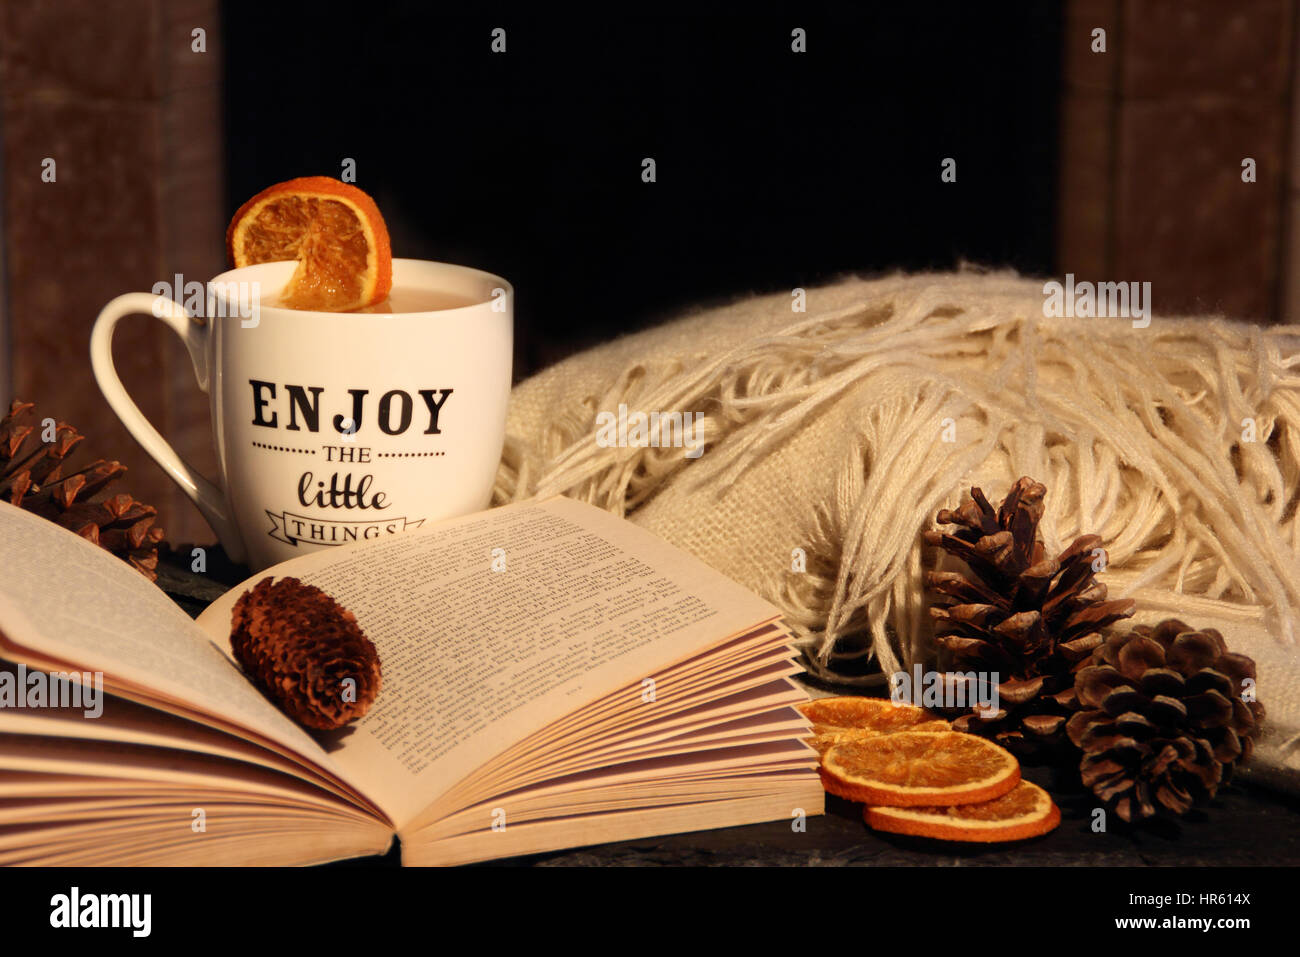 Reading a paperback book by a fireplace in a cosy hygge inspired English living room with a hot drink and blanket - Stock Image